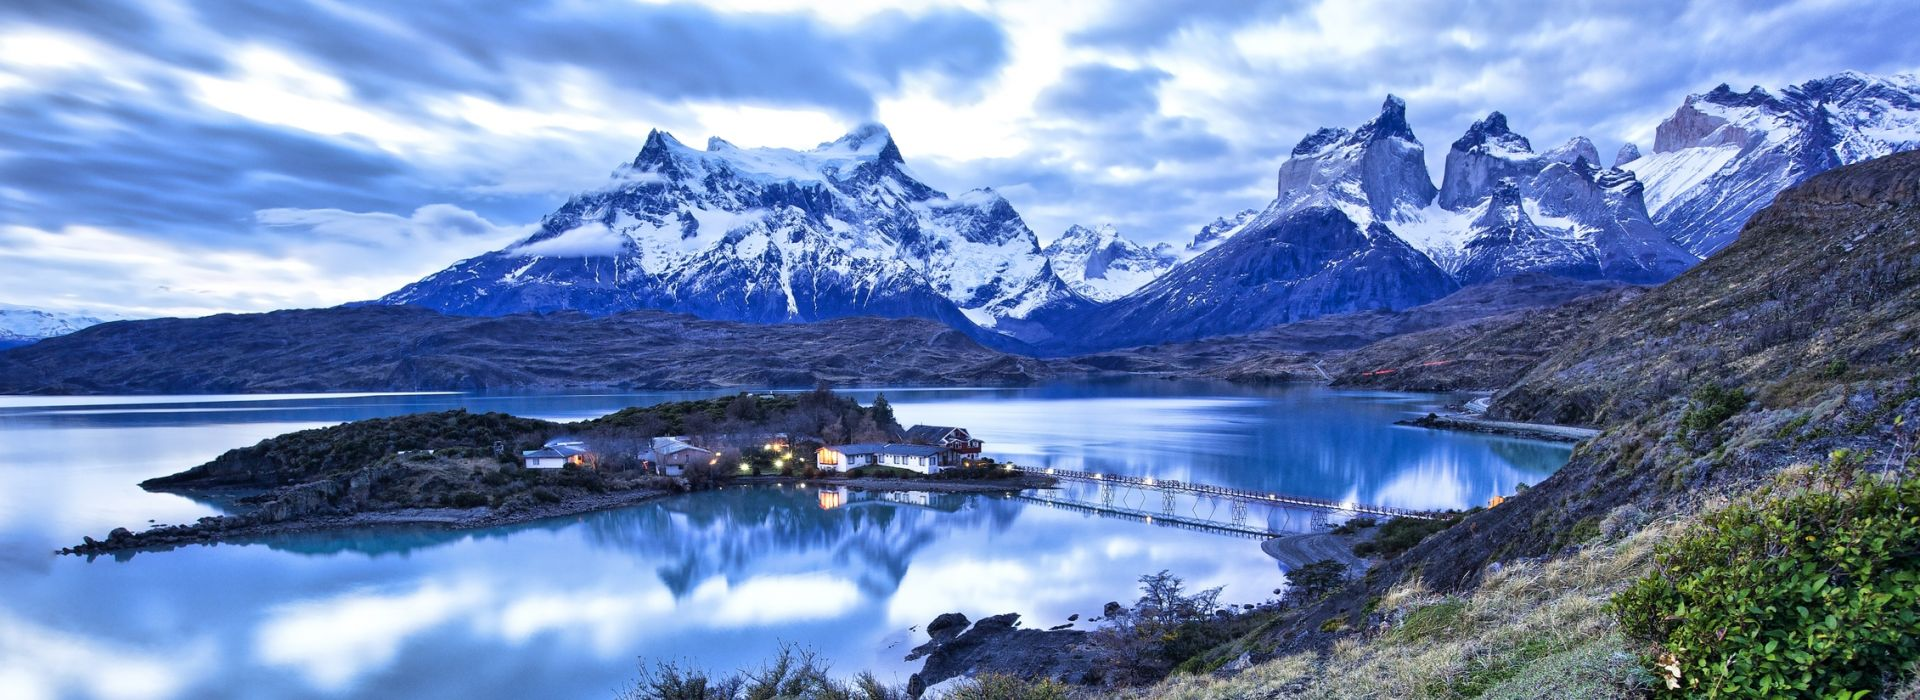 Travelling Chile - Tours and Holiday Packages in Chile